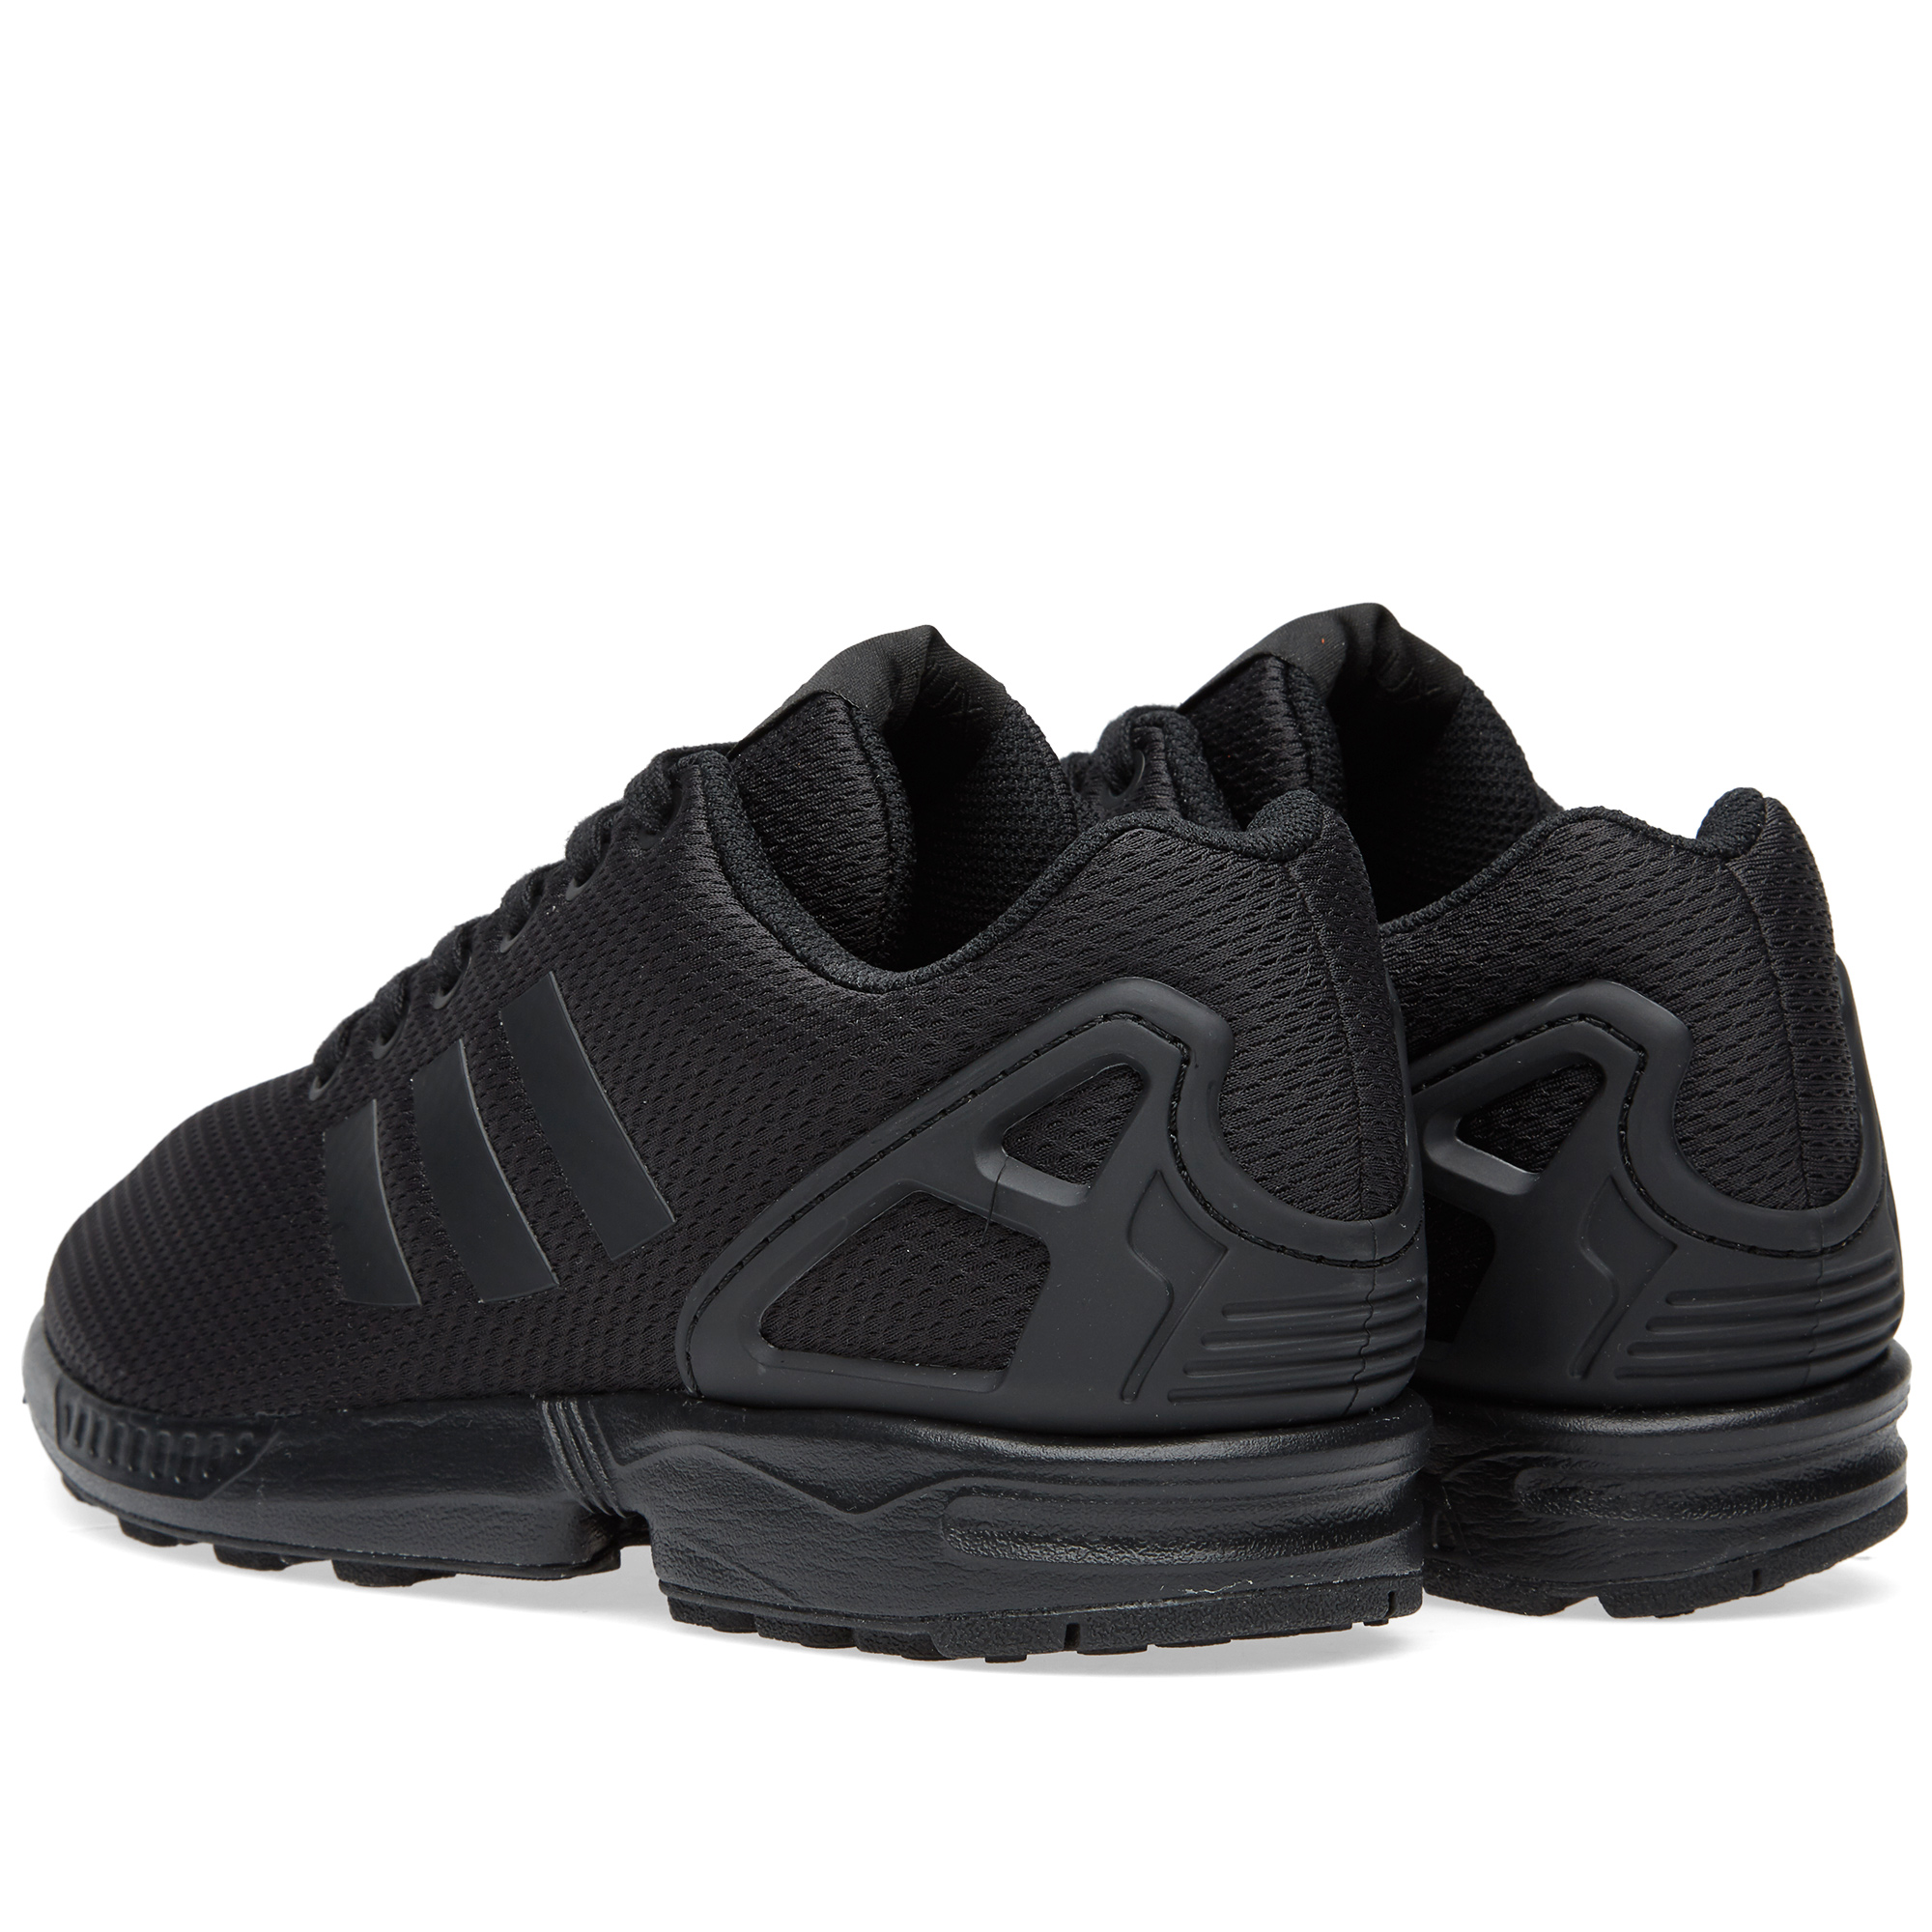 adidas torsion zx flux nz